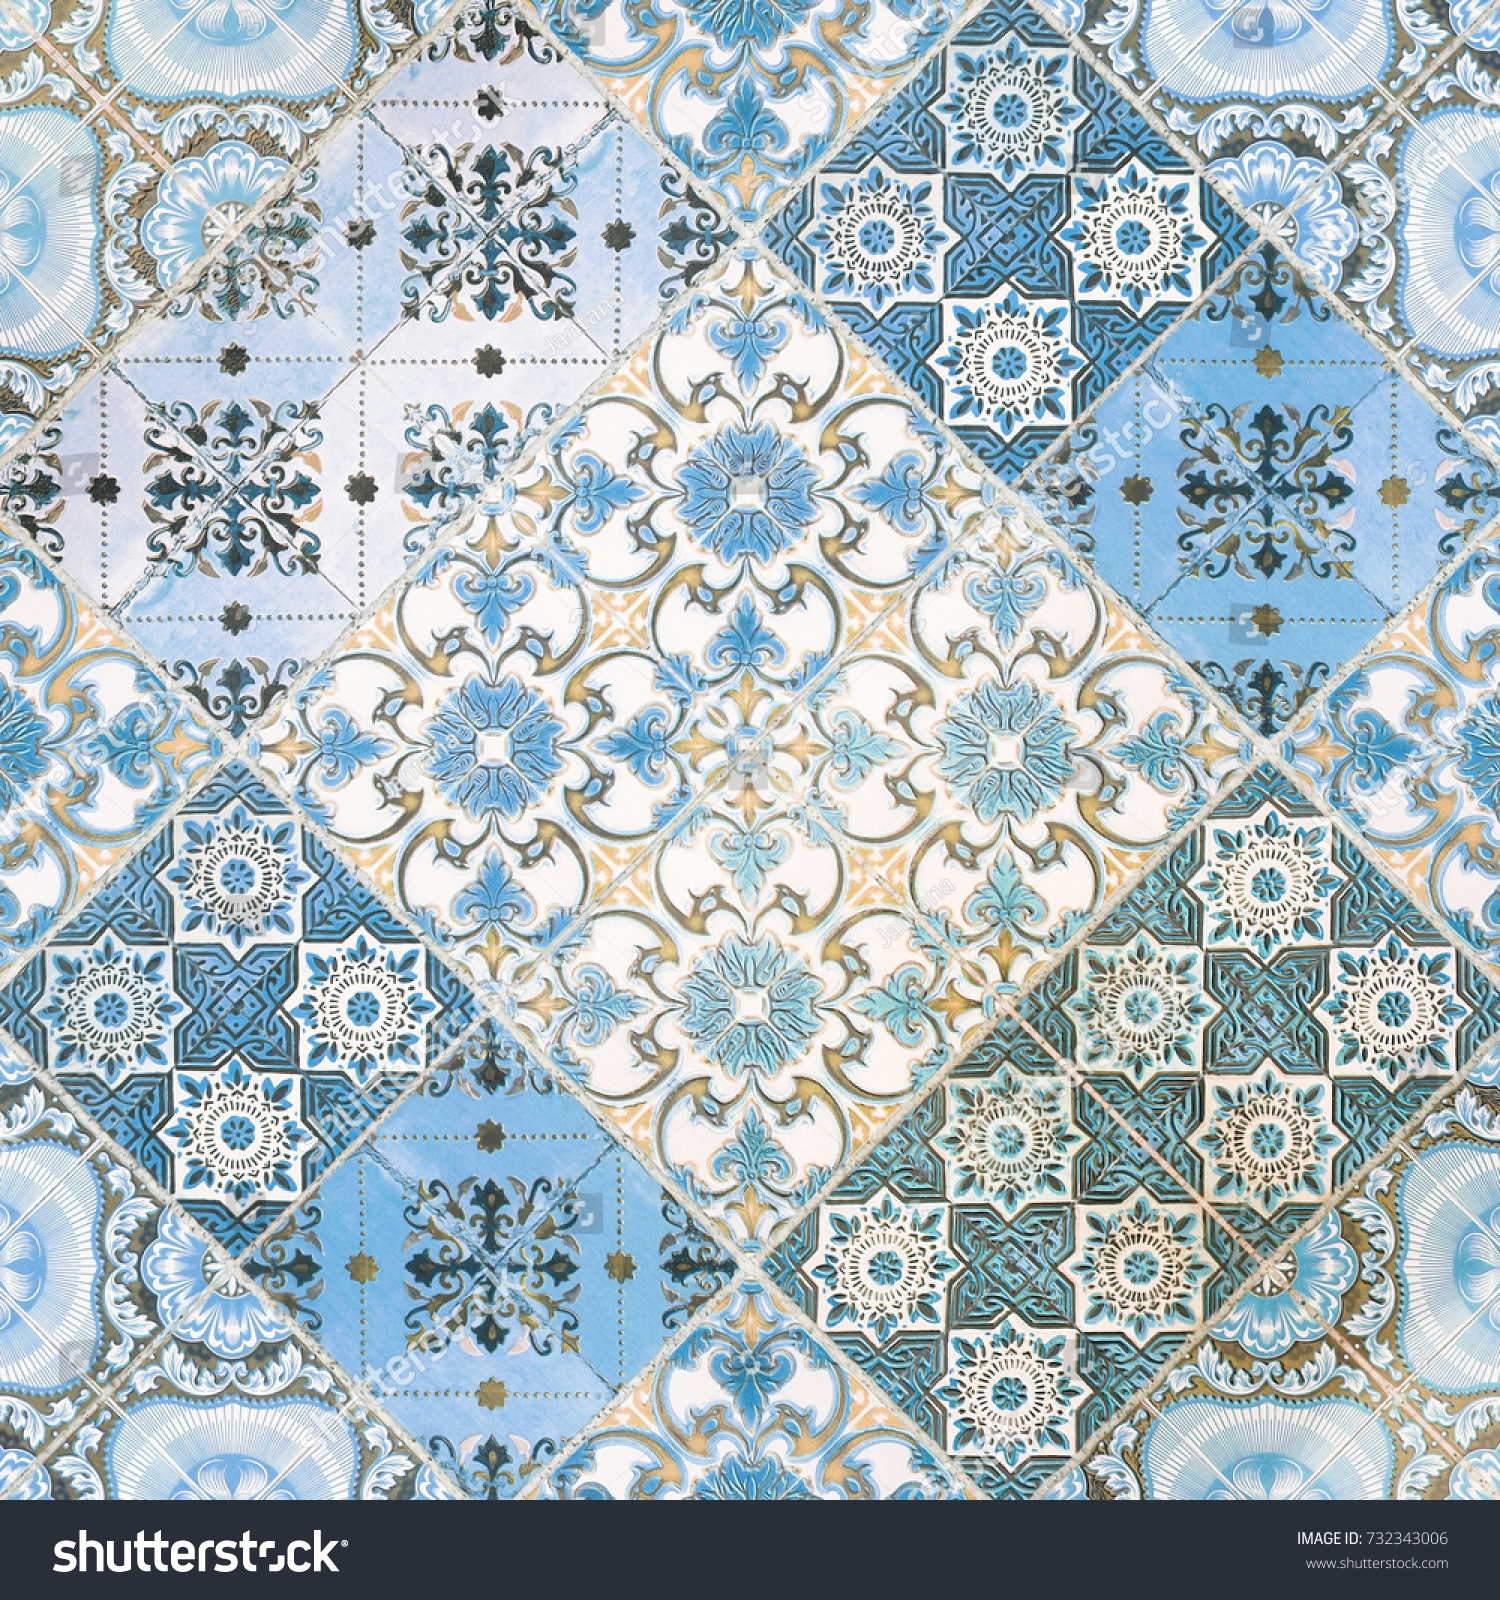 Beautiful Old Ceramic Tile Wall Patterns Stock Photo (Royalty Free ...